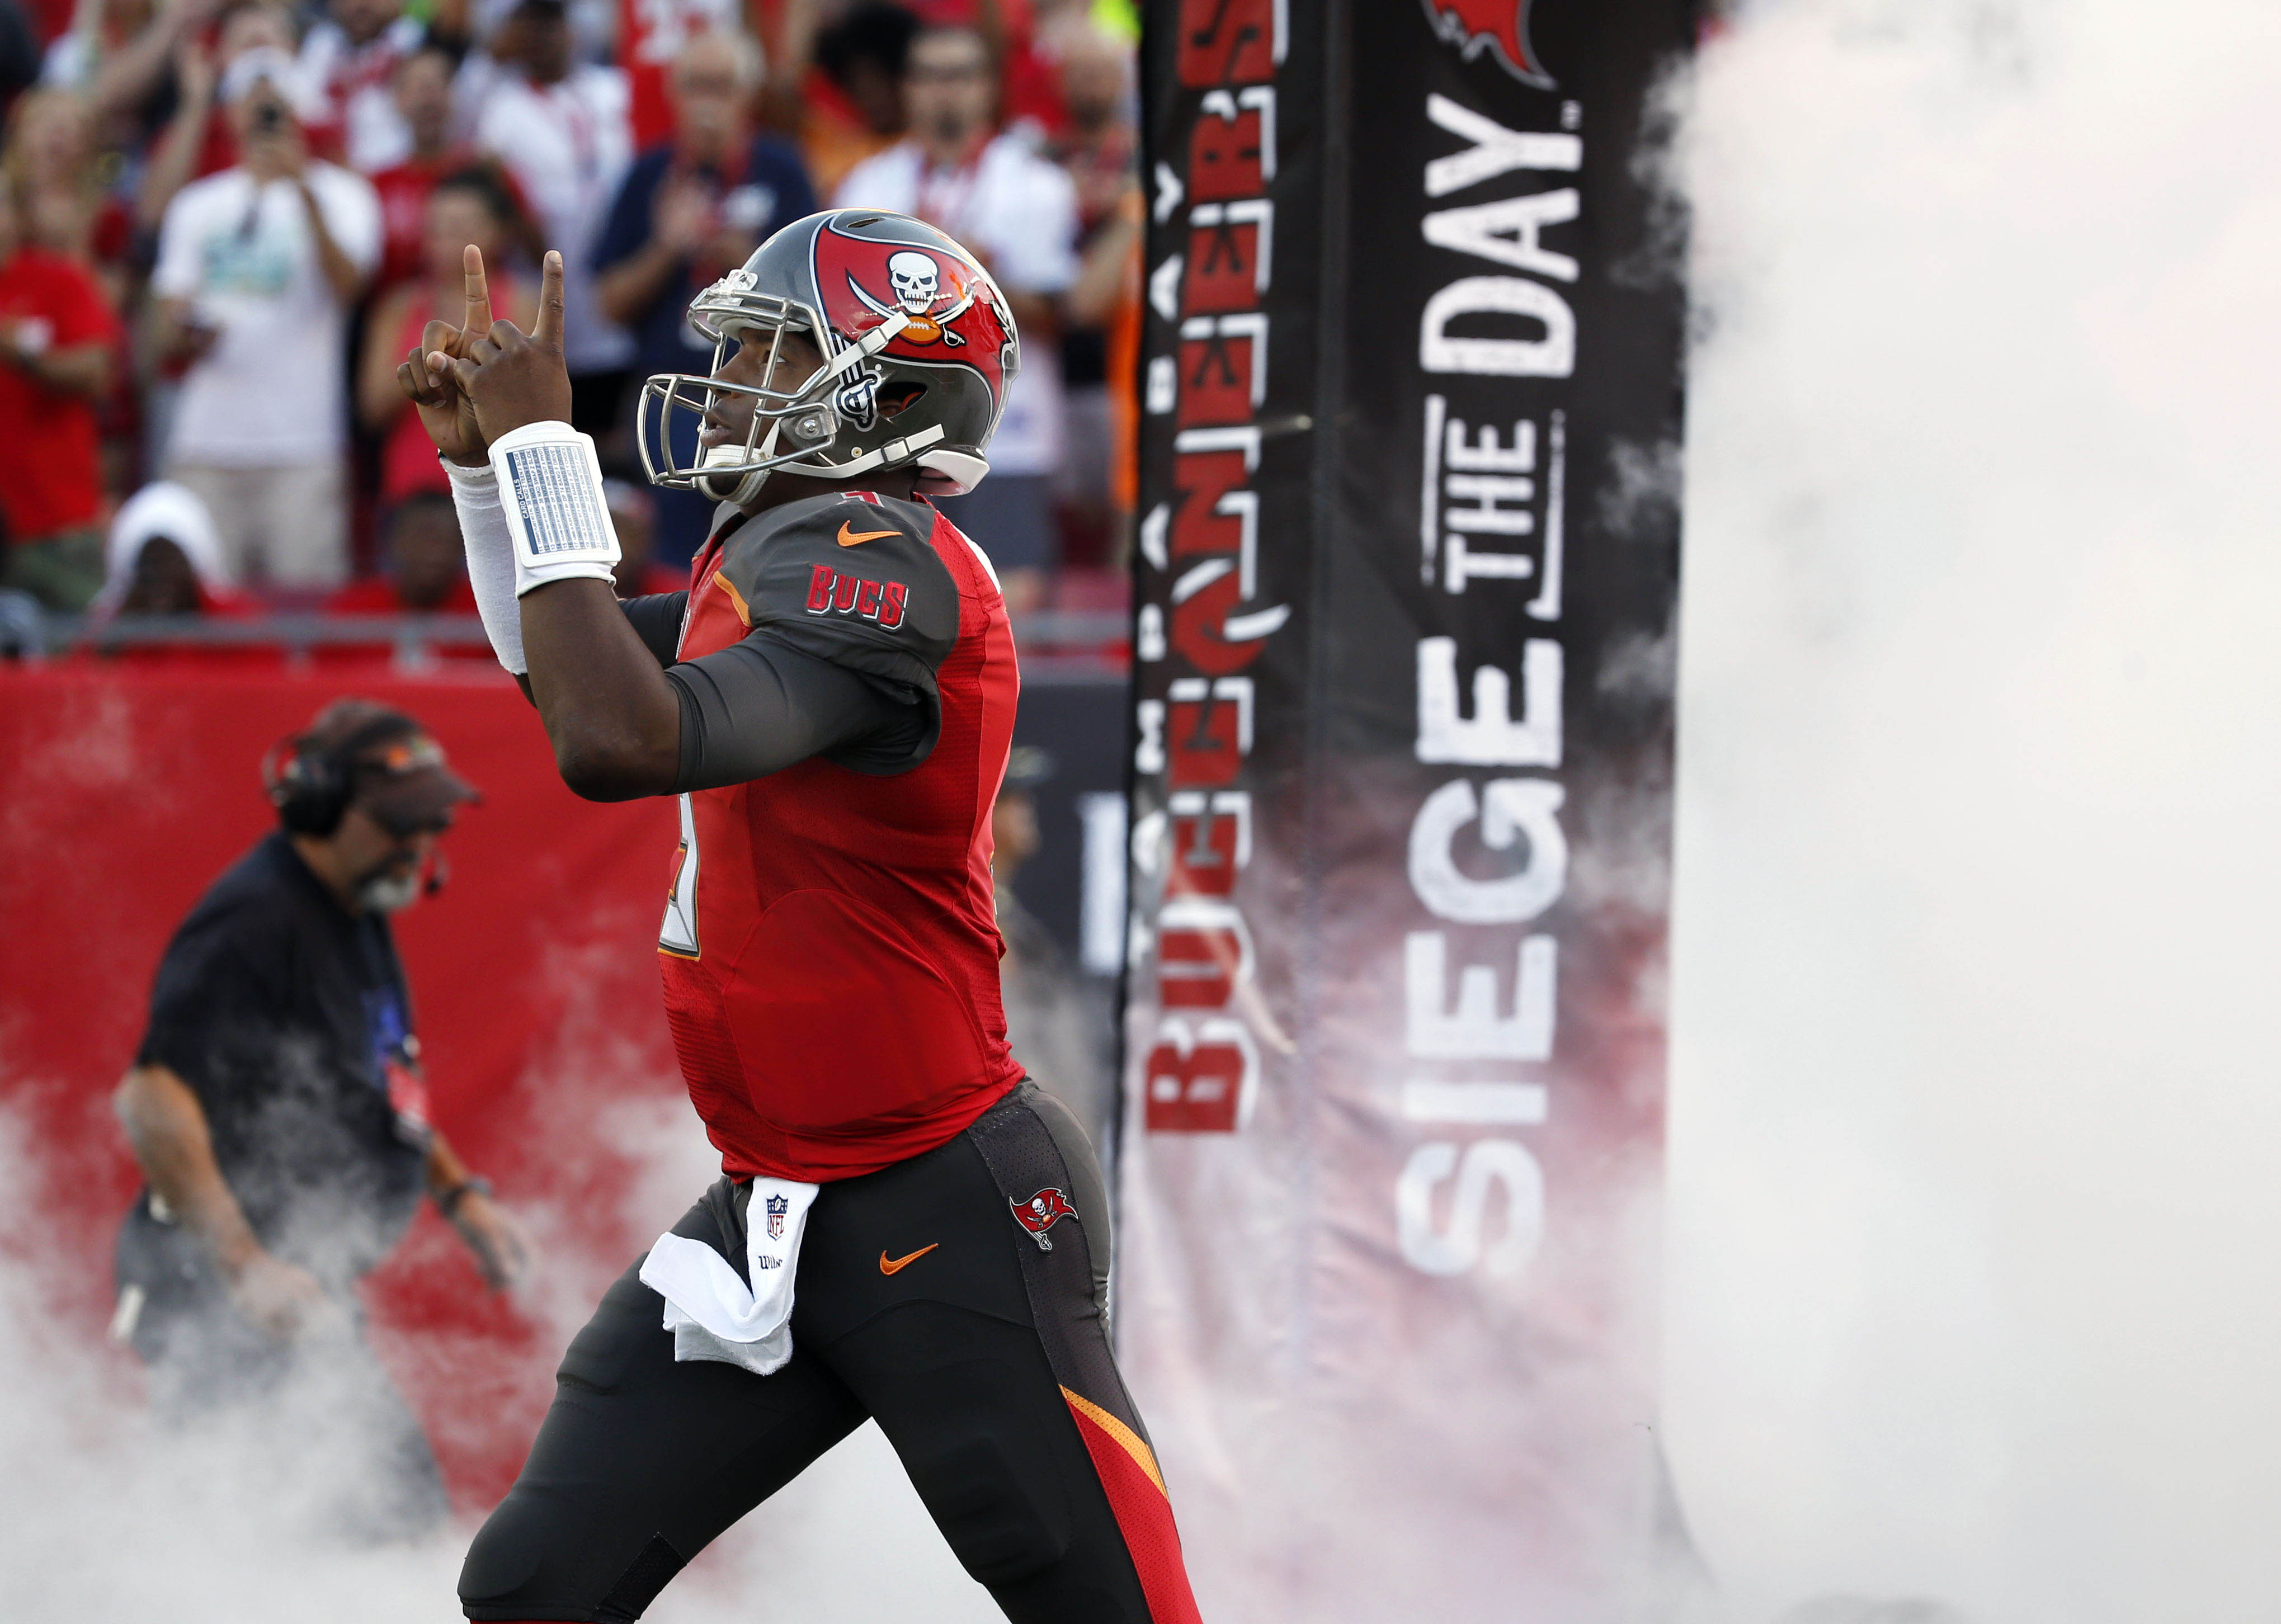 9710031-nfl-seattle-seahawks-at-tampa-bay-buccaneers